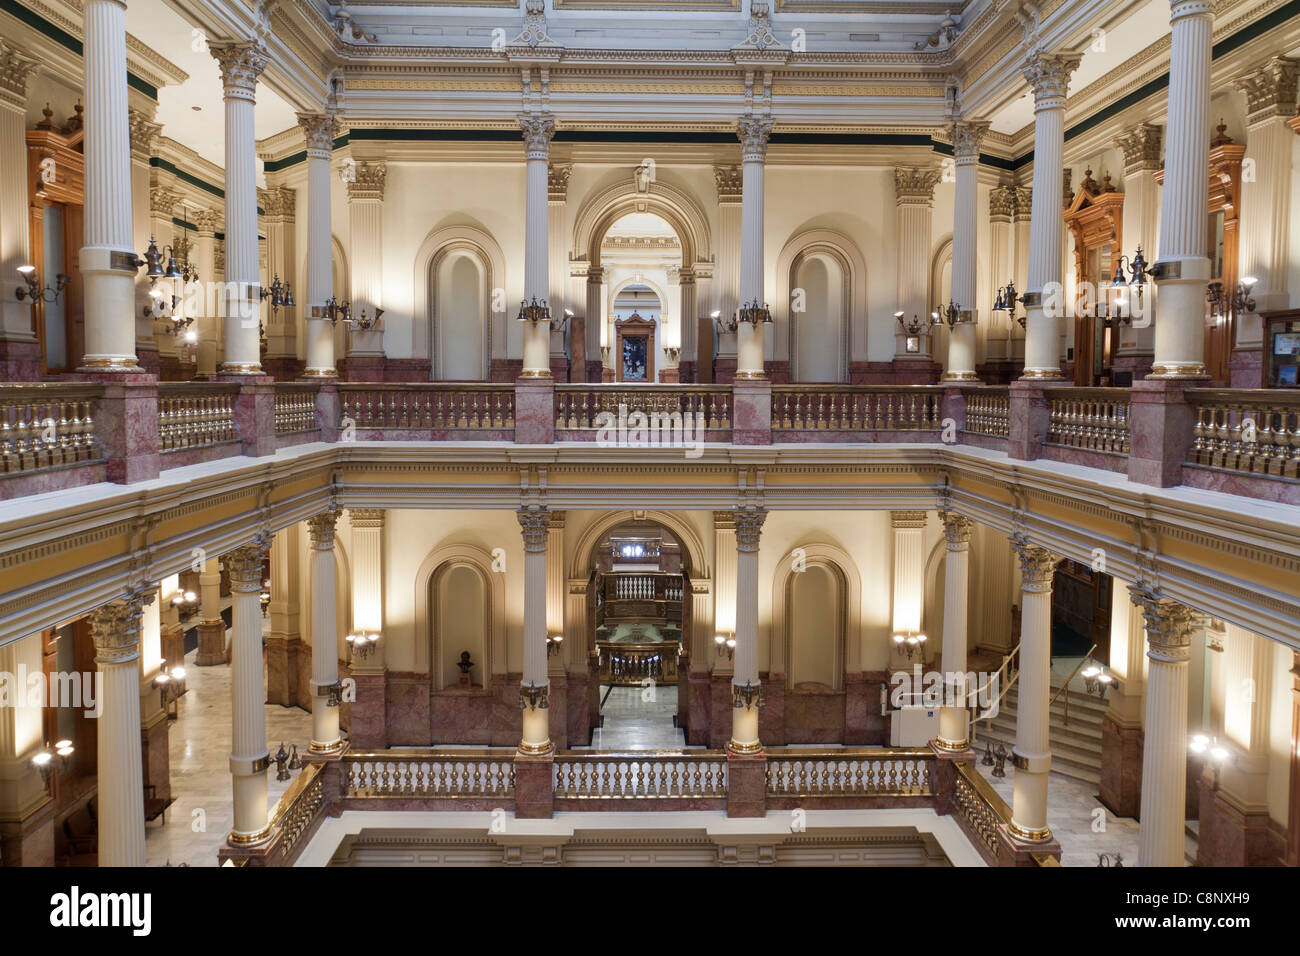 Two levels of atrium inside Colorado state capitol building in Denver - Stock Image